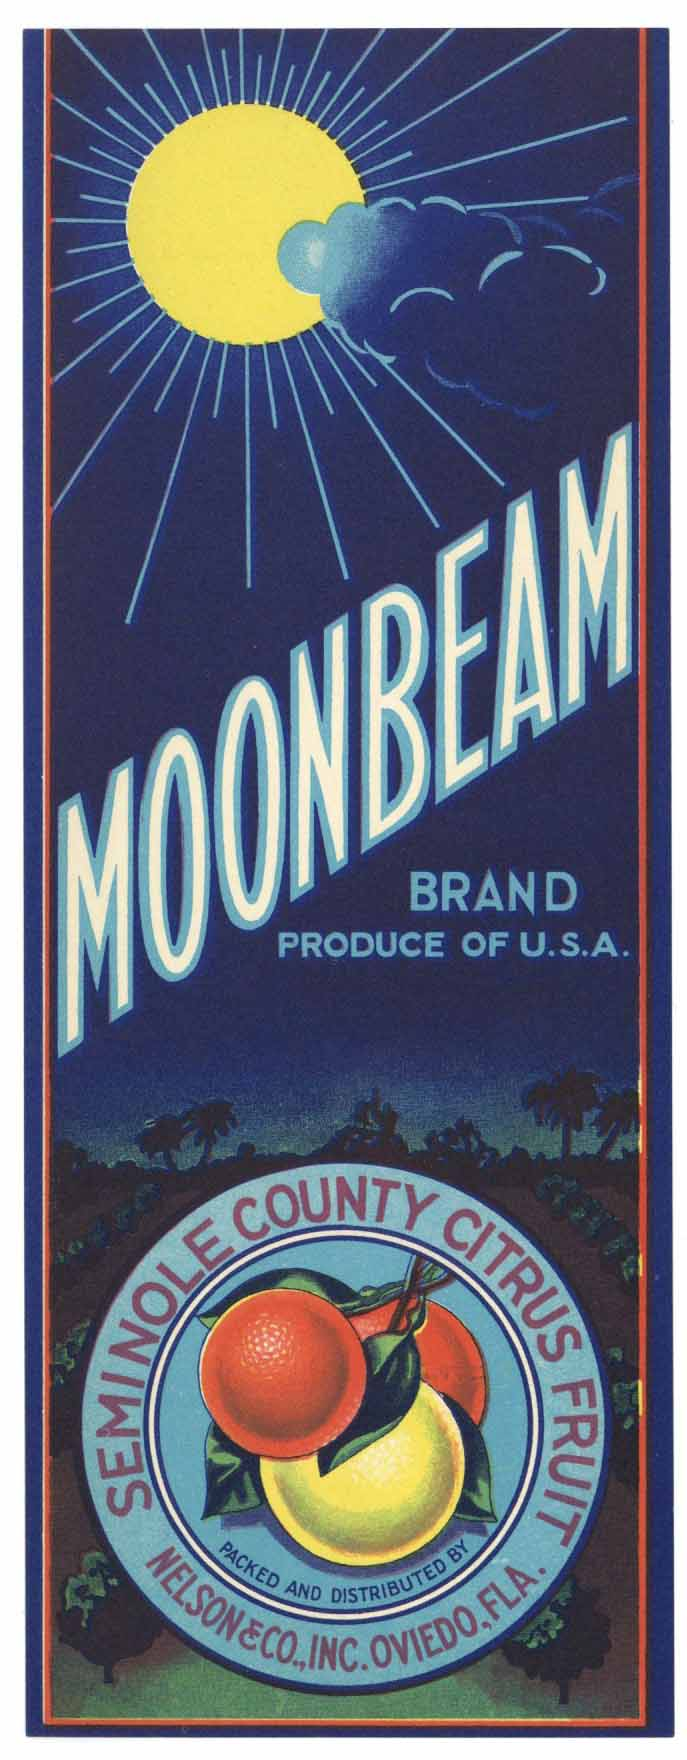 Moonbeam Brand Vintage Oviedo Florida Citrus Crate Label, vertical